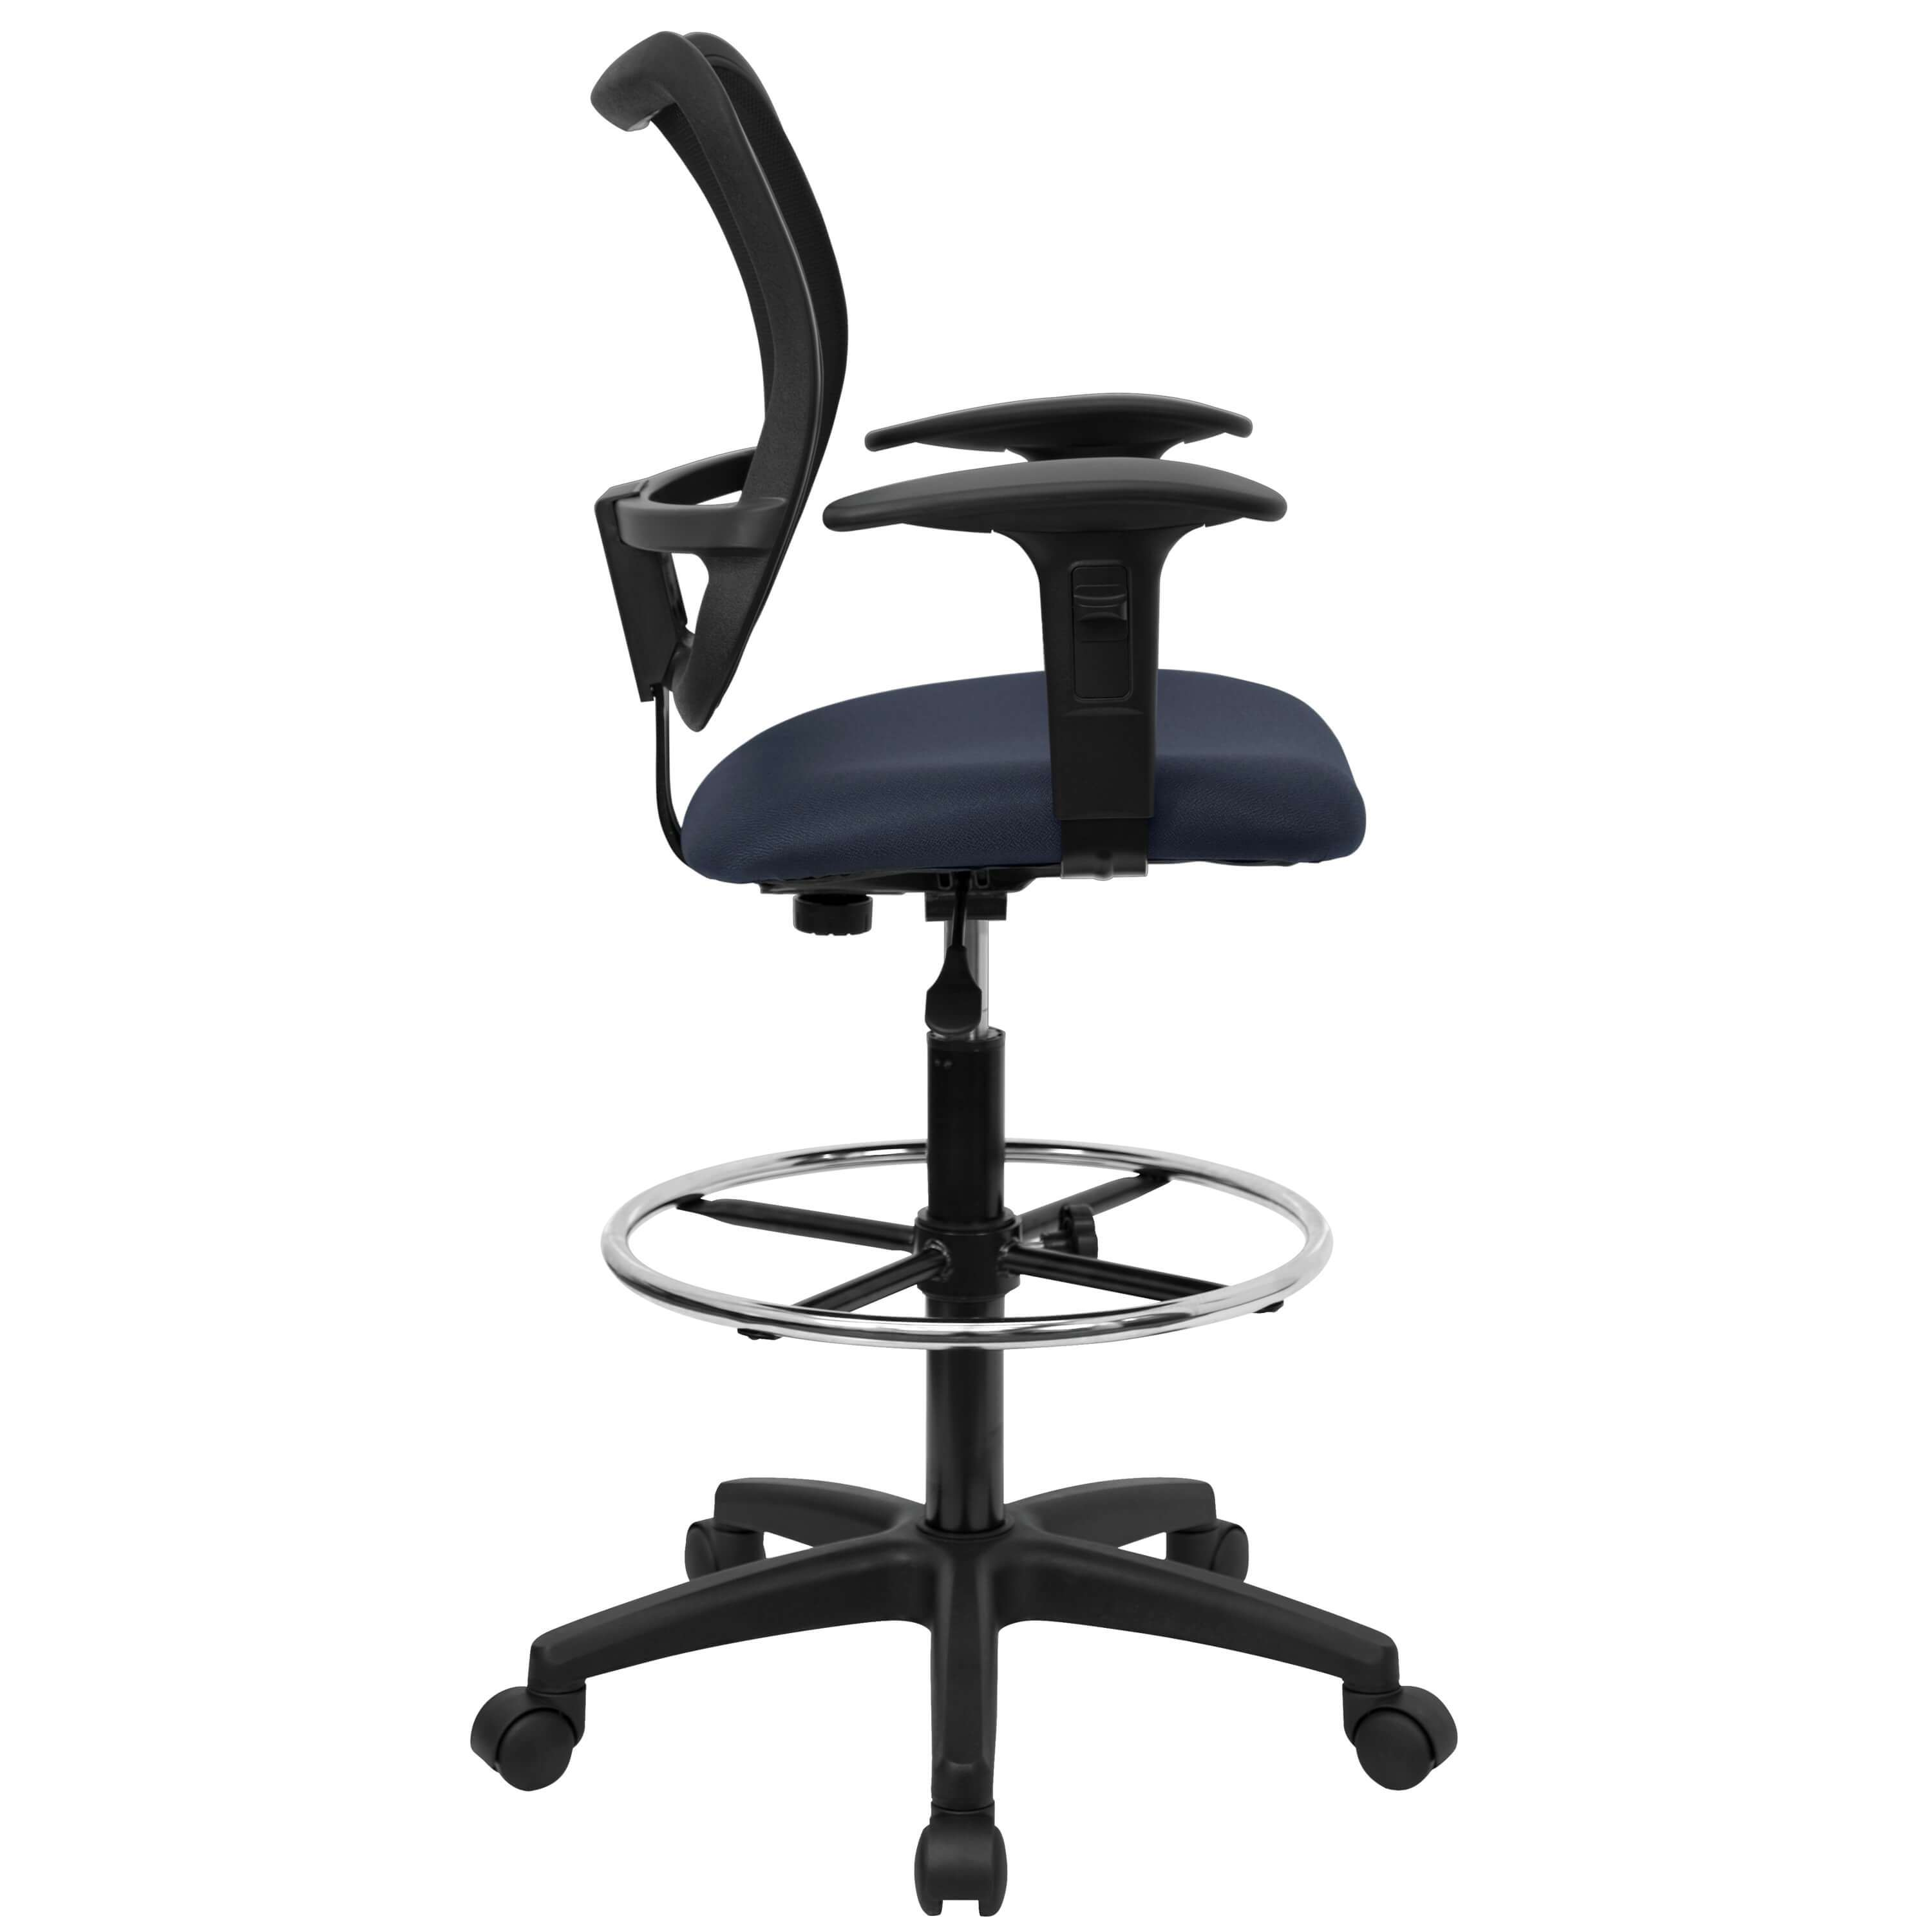 Drafting office chair side view